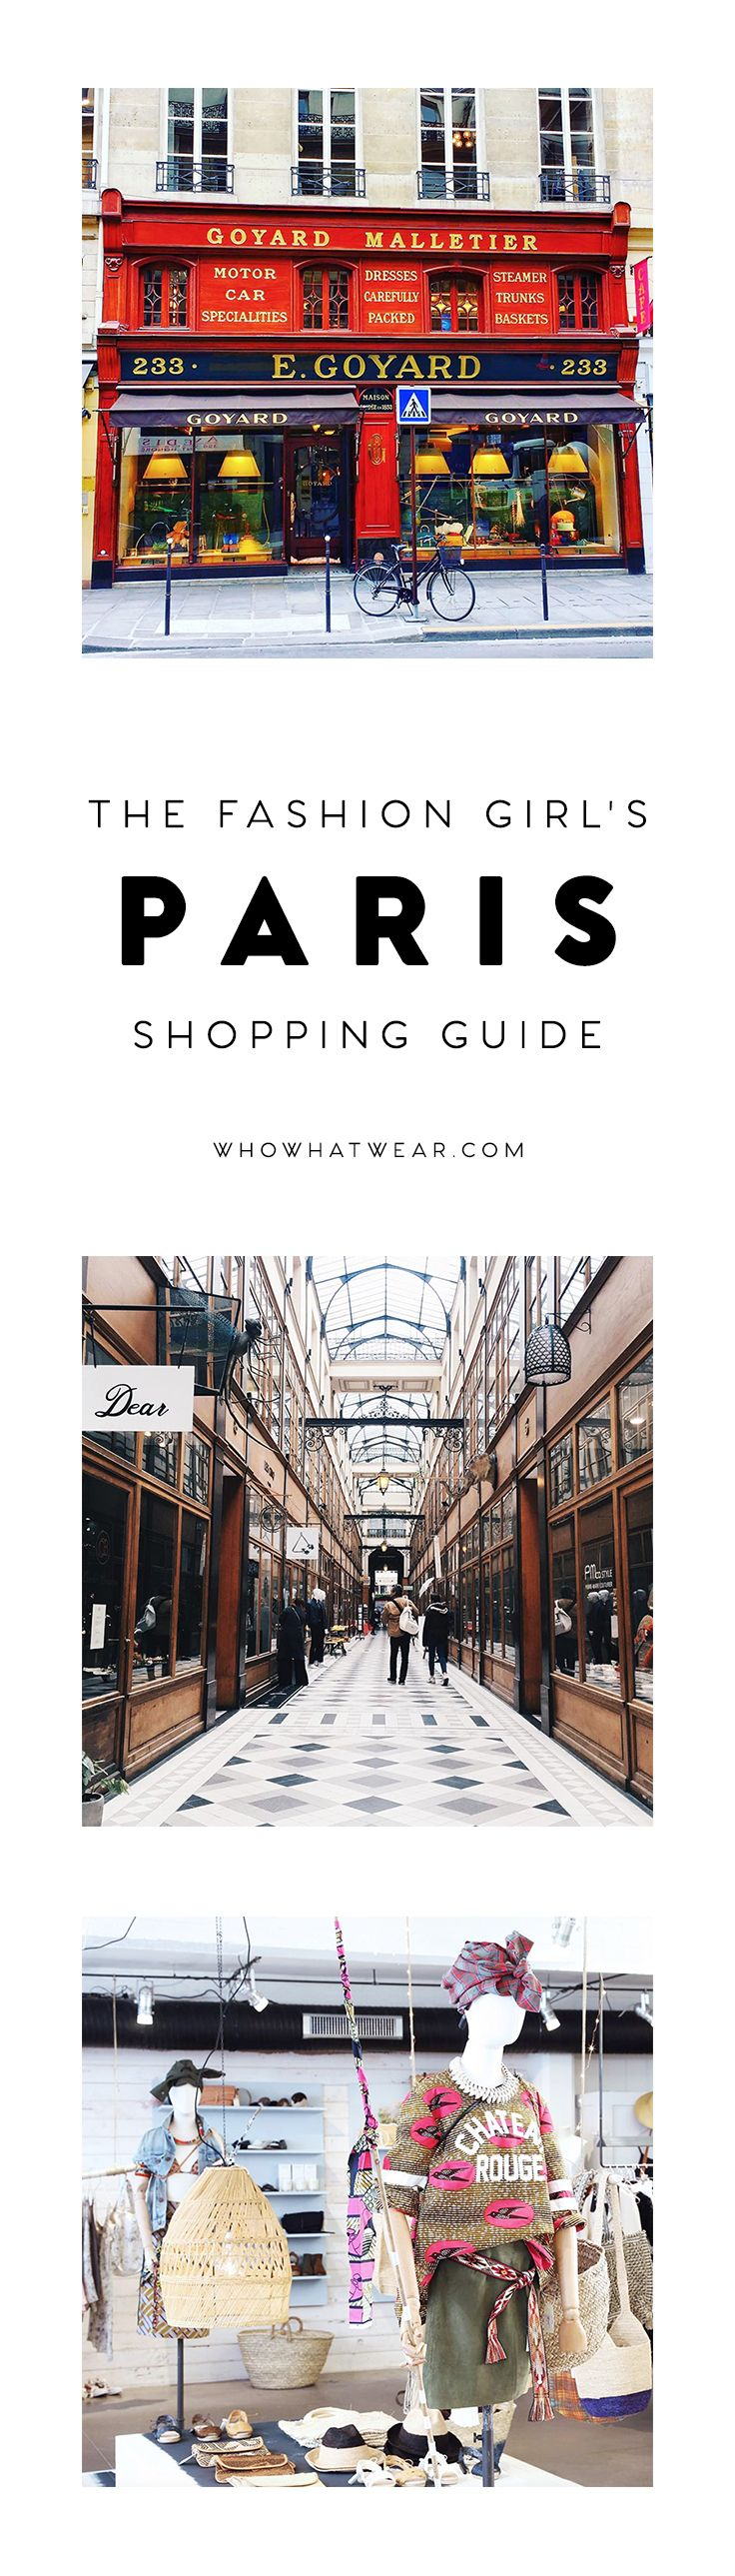 The fashion girl's shopping guide to Paris